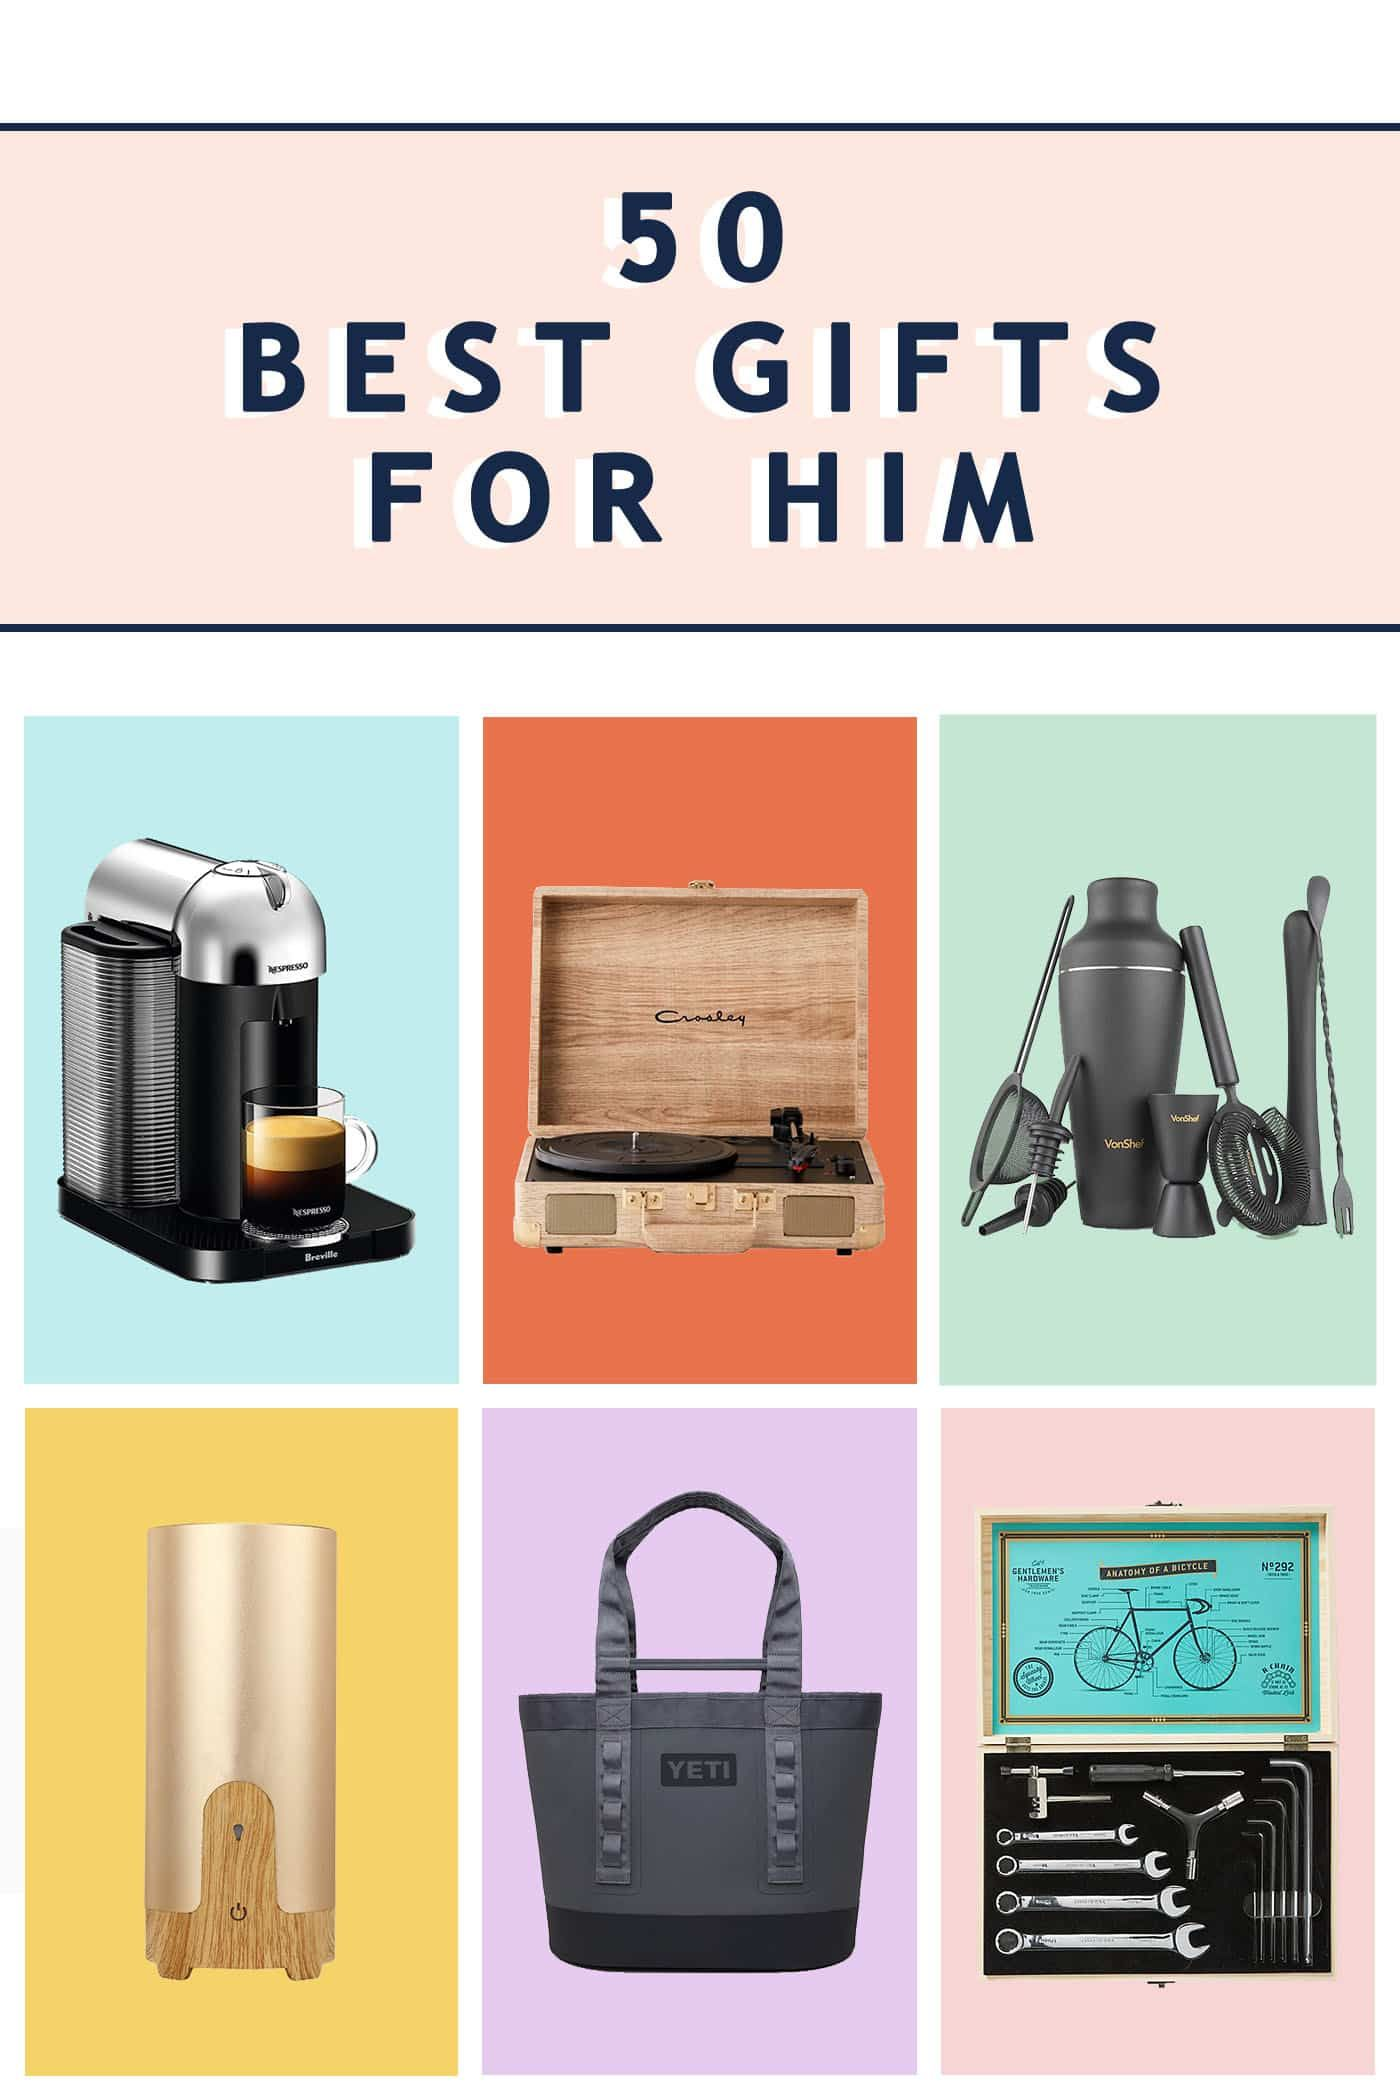 Gifts for Men 50 Best Gifts for Him (With images) Best